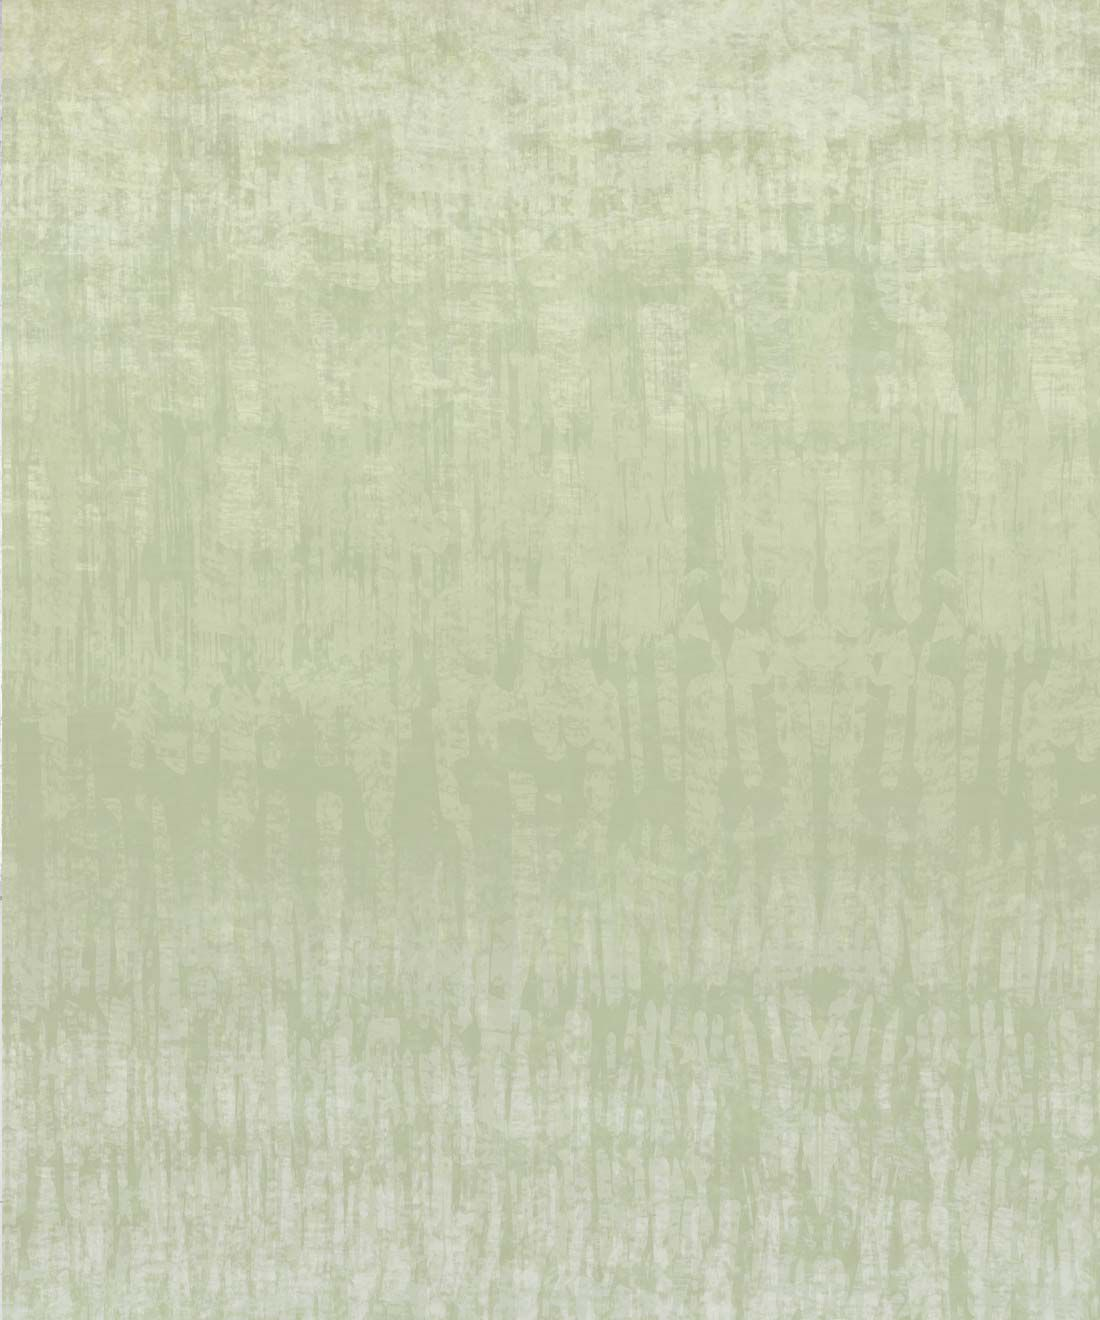 Tourmaline Wallpaper by Simcox • Color Green • Abstract Wallpaper • swatch